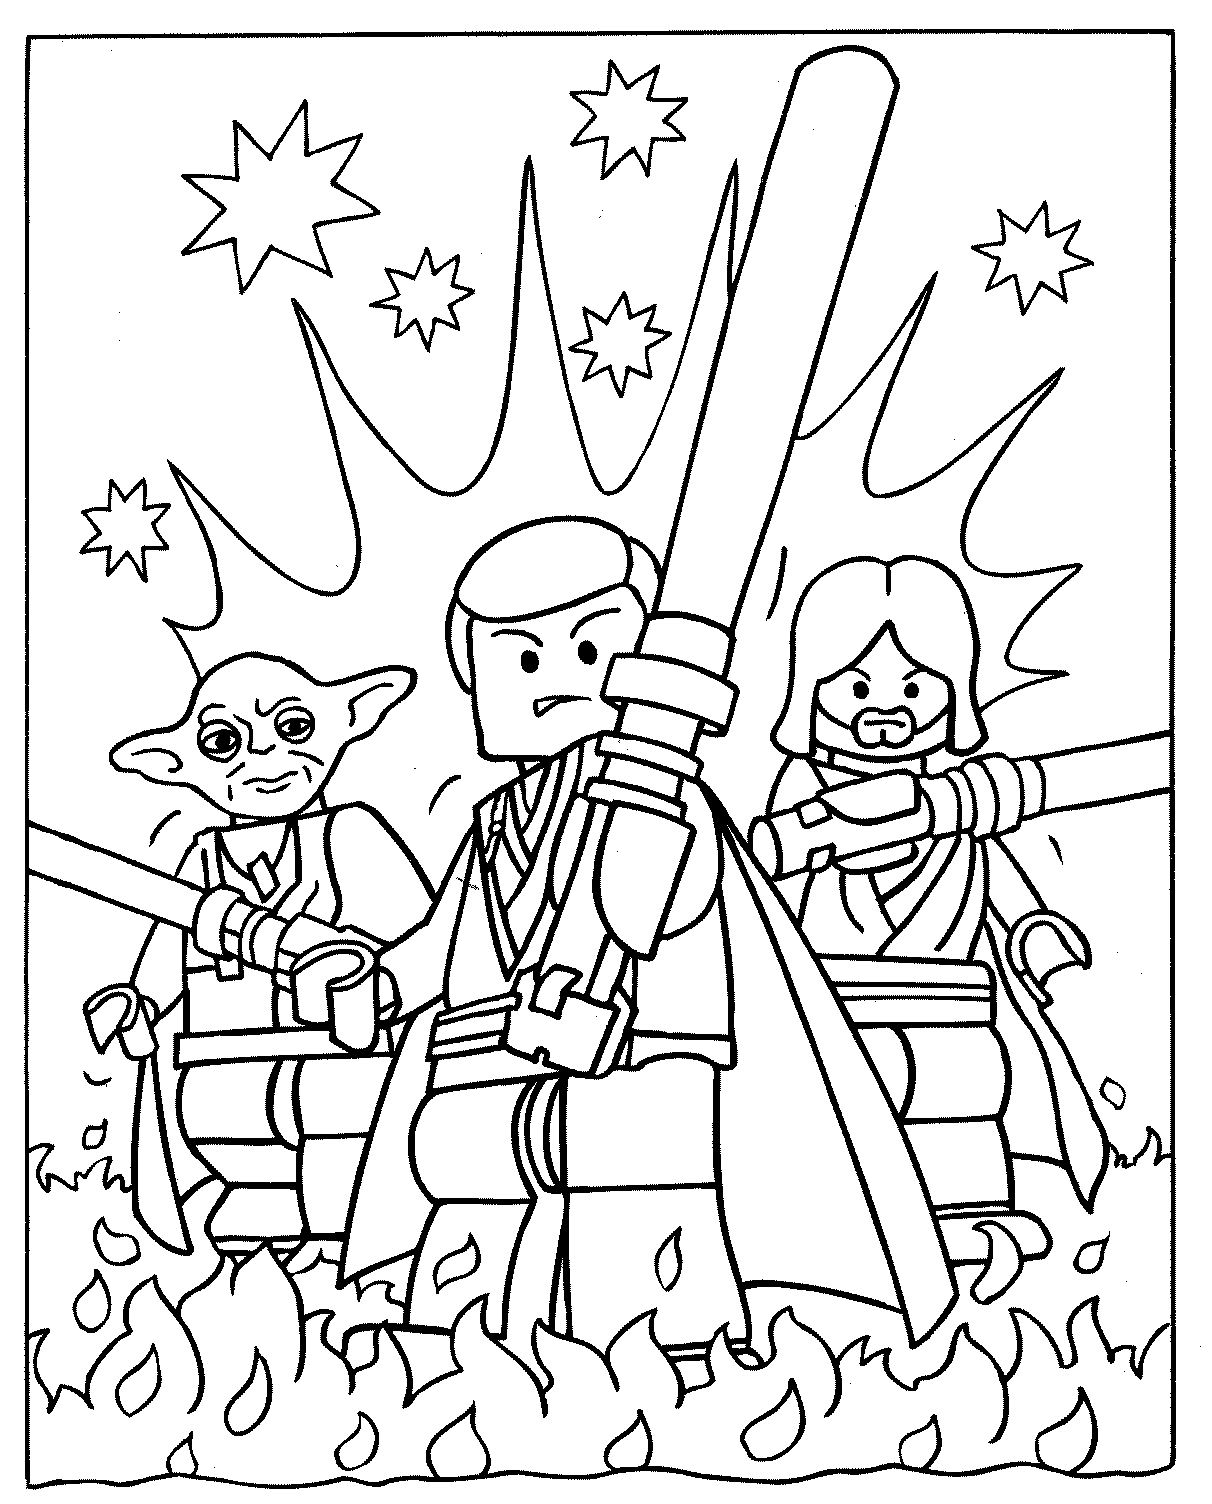 1212x1504 Lego Han Solo And Luke Skywalker Free Coloring Page Kids, Lego